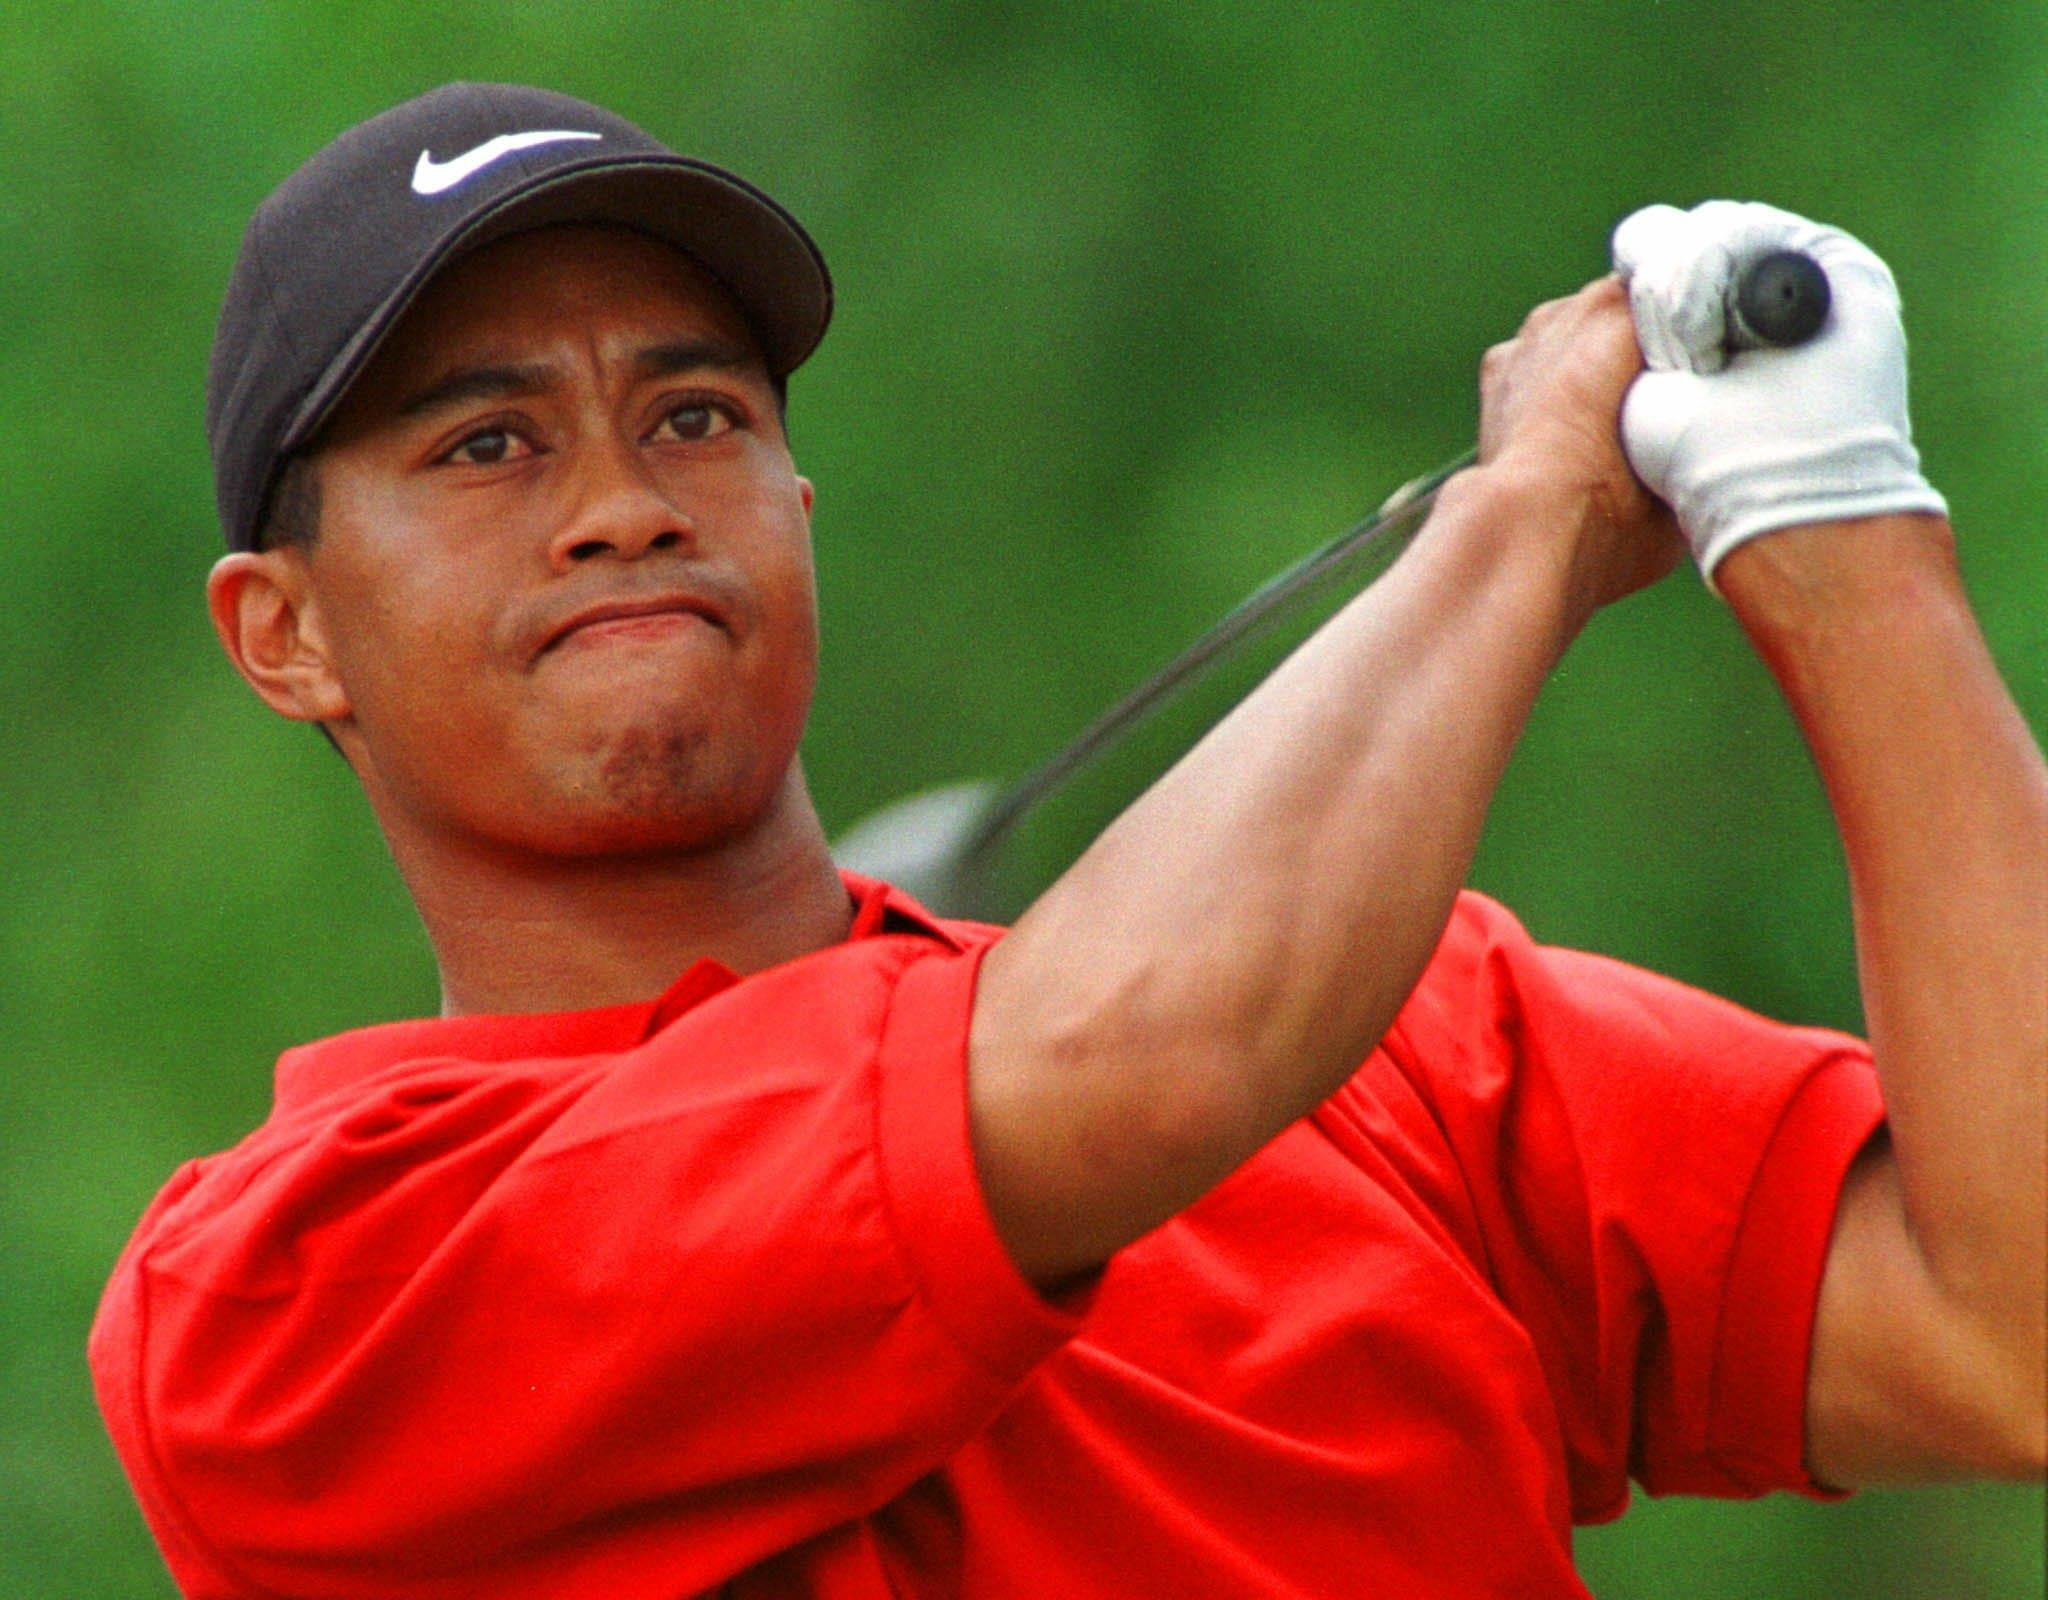 His tradition of wearing red on Sundays became known to everyone following his win in the 1997 Masters